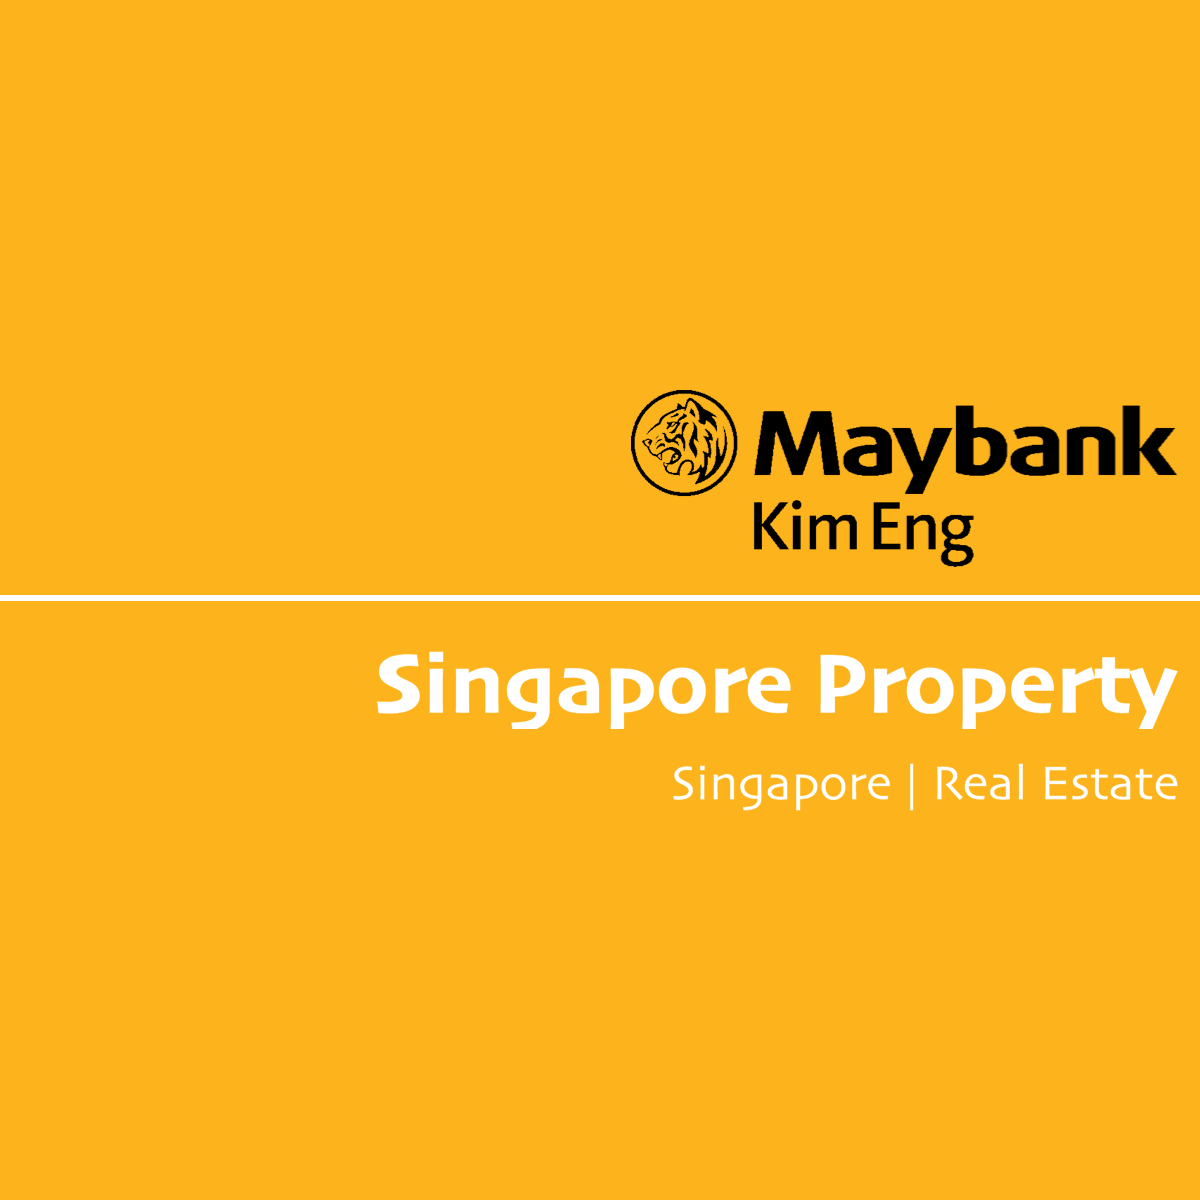 Singapore Property - Maybank Kim Eng 2017-08-25: Resurgent Enbloc Market Could Promote Rational Land-Banking